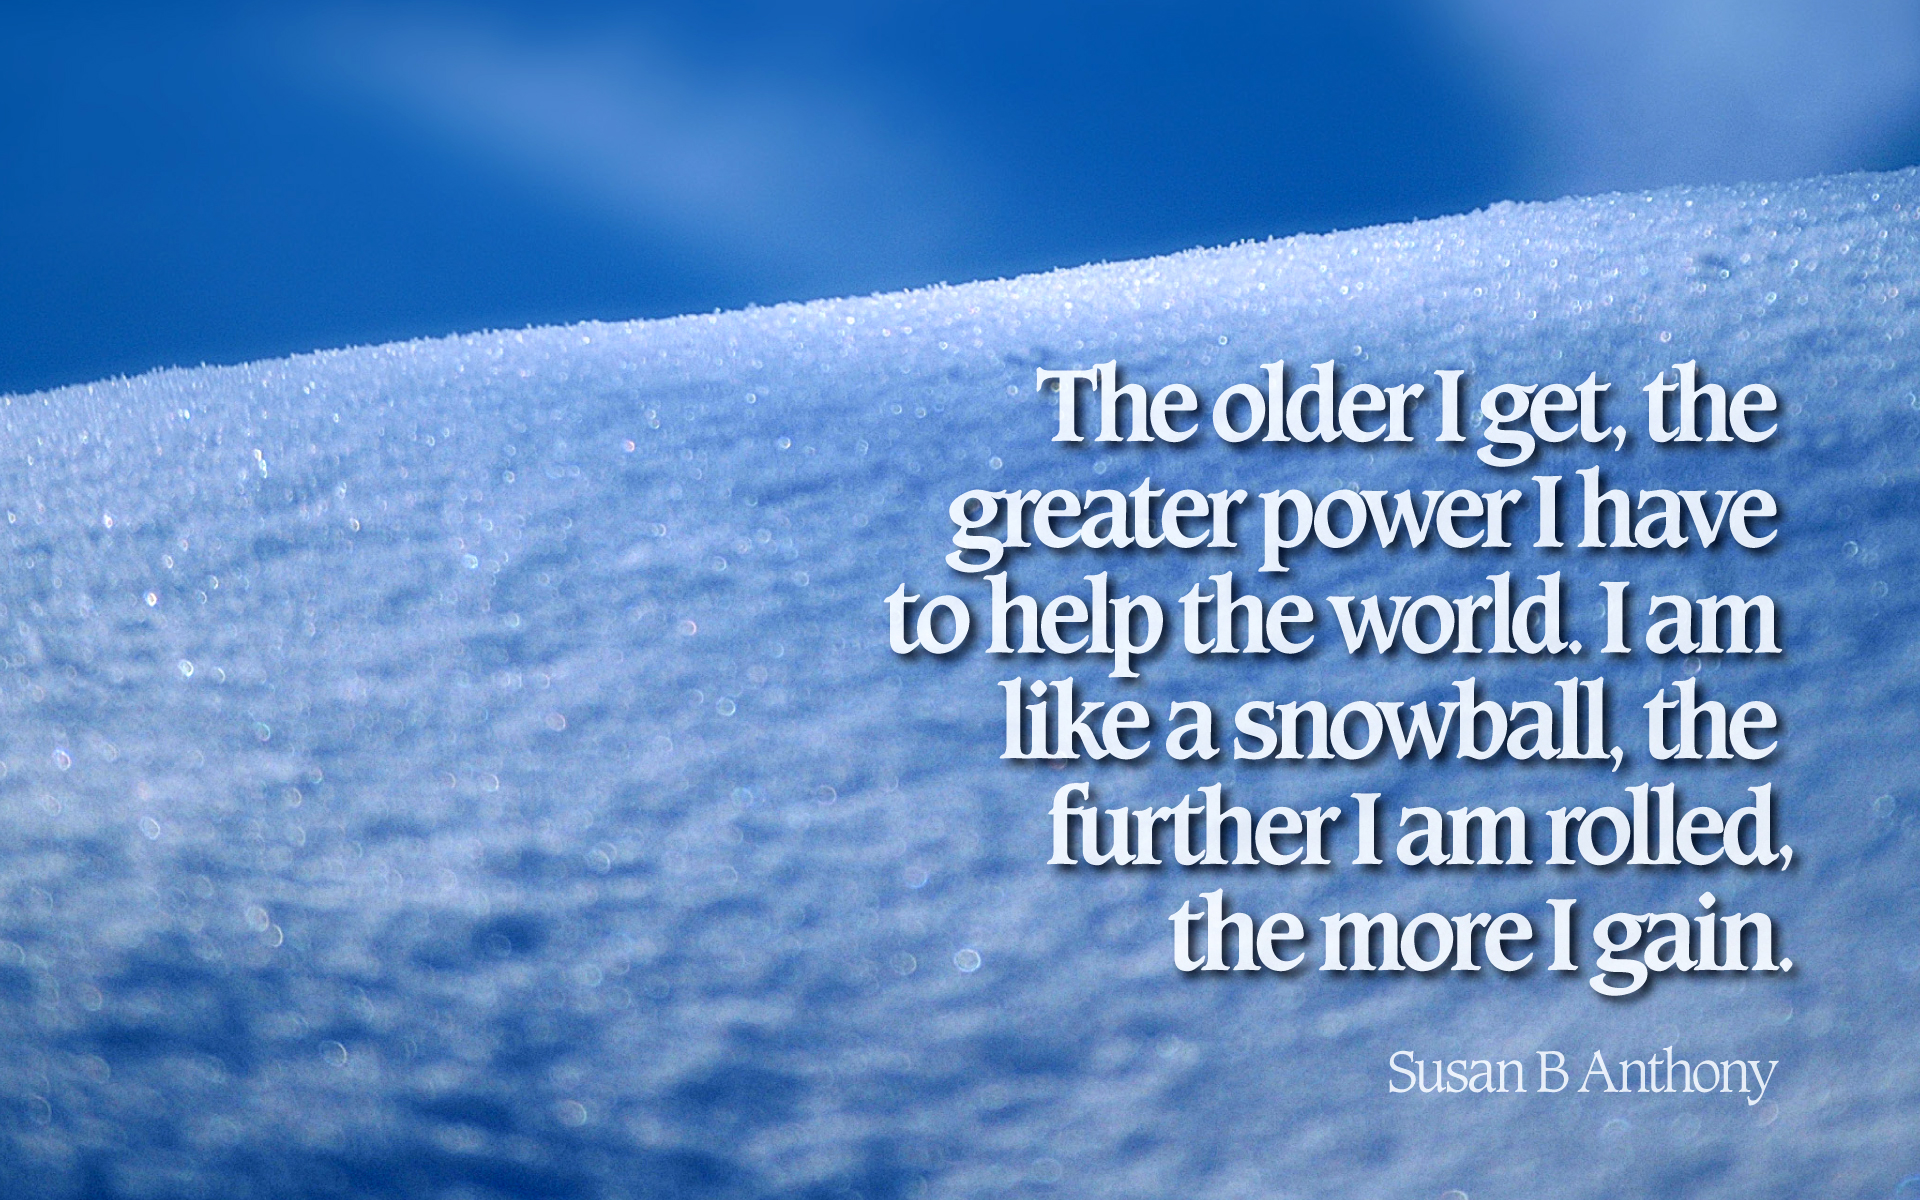 The older I get, the greater power I have to help the world. I am like a snowball, the further I am rolled, the more I gain. — Susan B. Anthony [1920×1200]